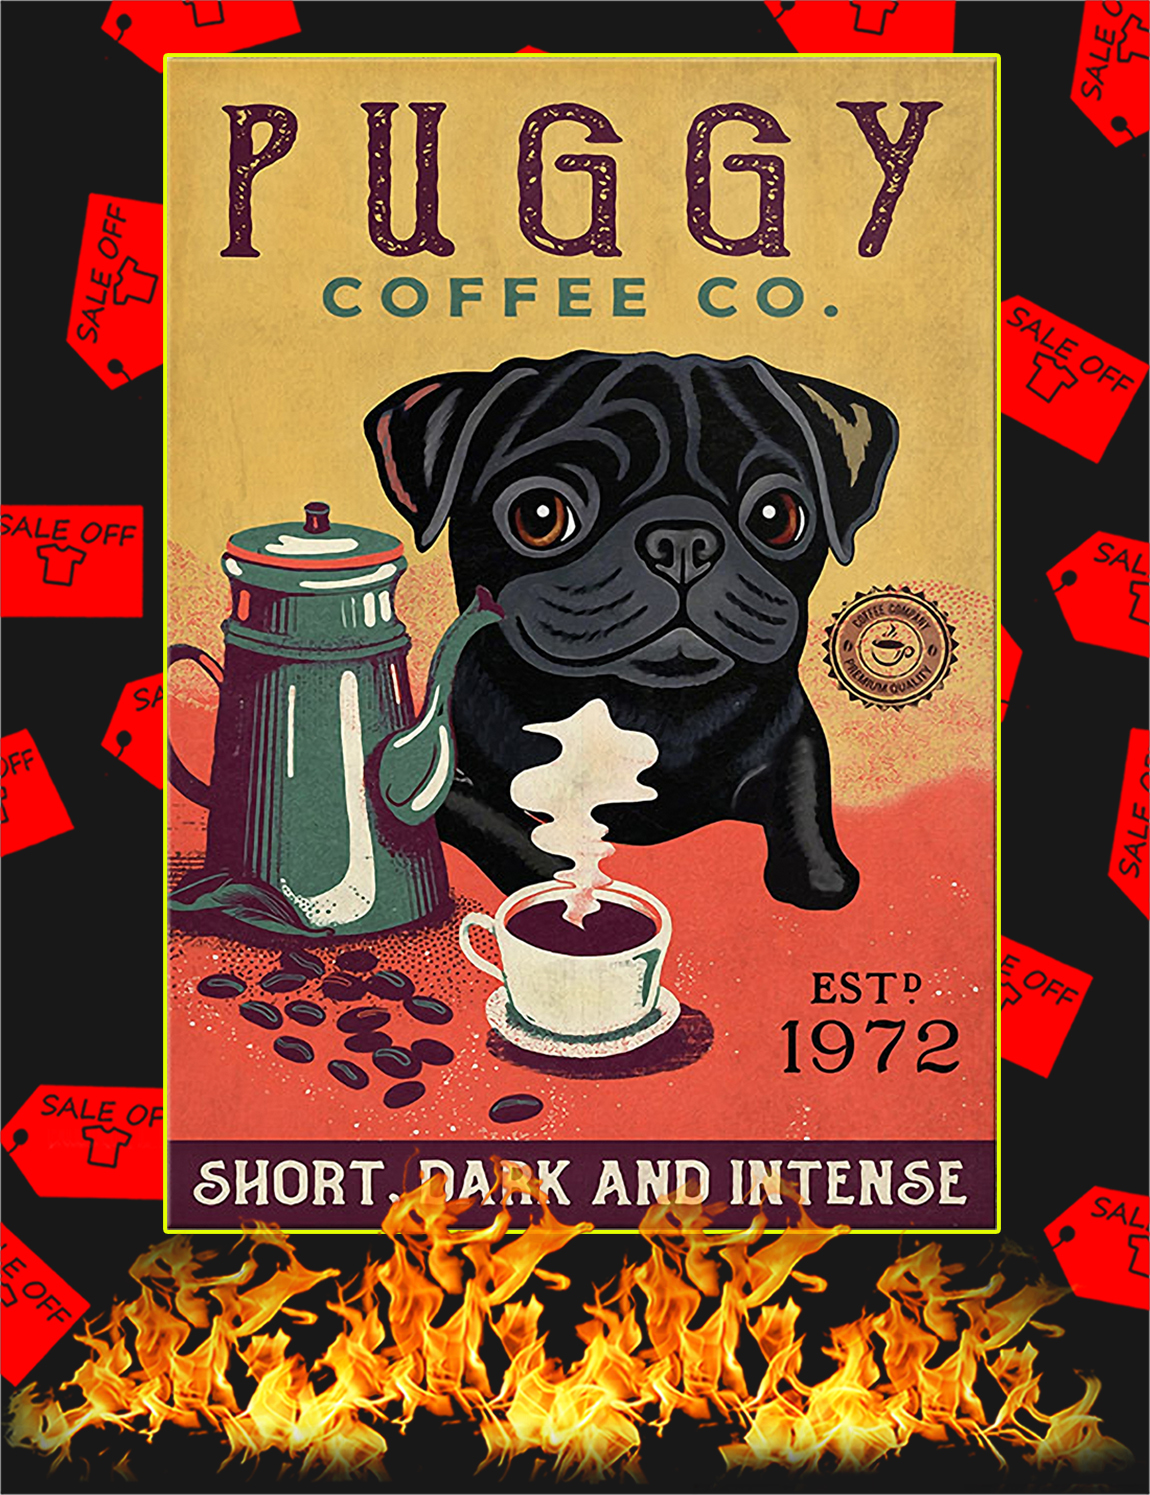 Puggy coffee co short dark and intense poster - A3